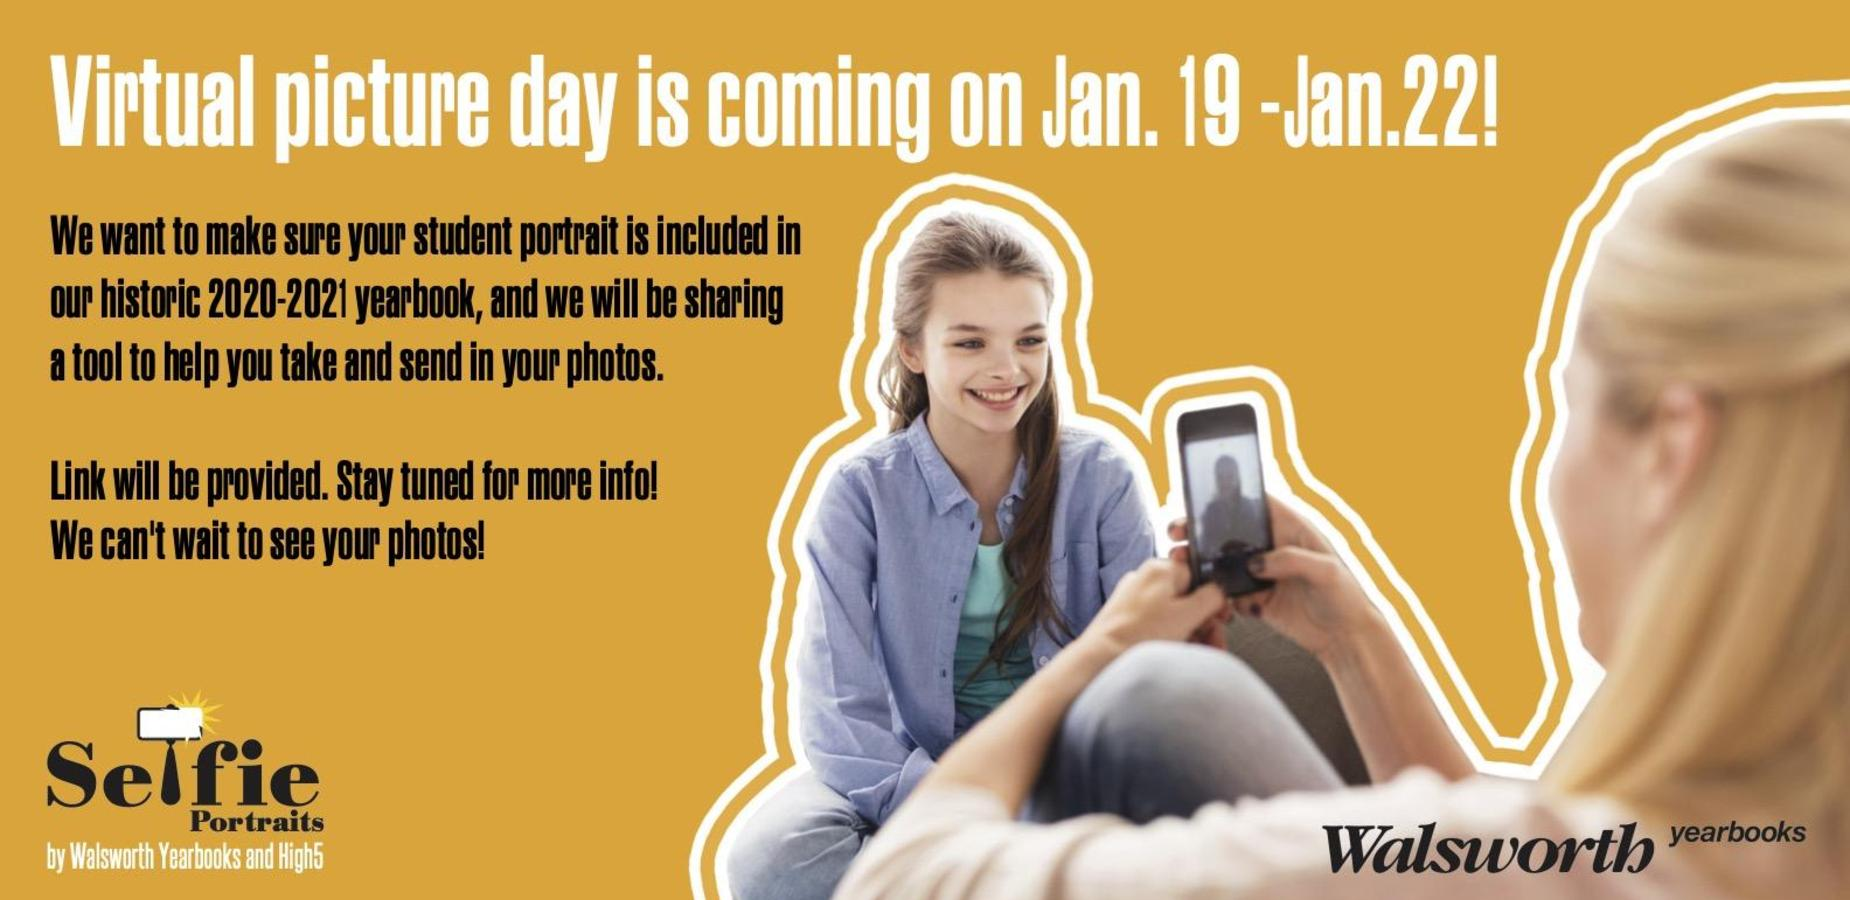 Virtual picture day Jan. 19-22